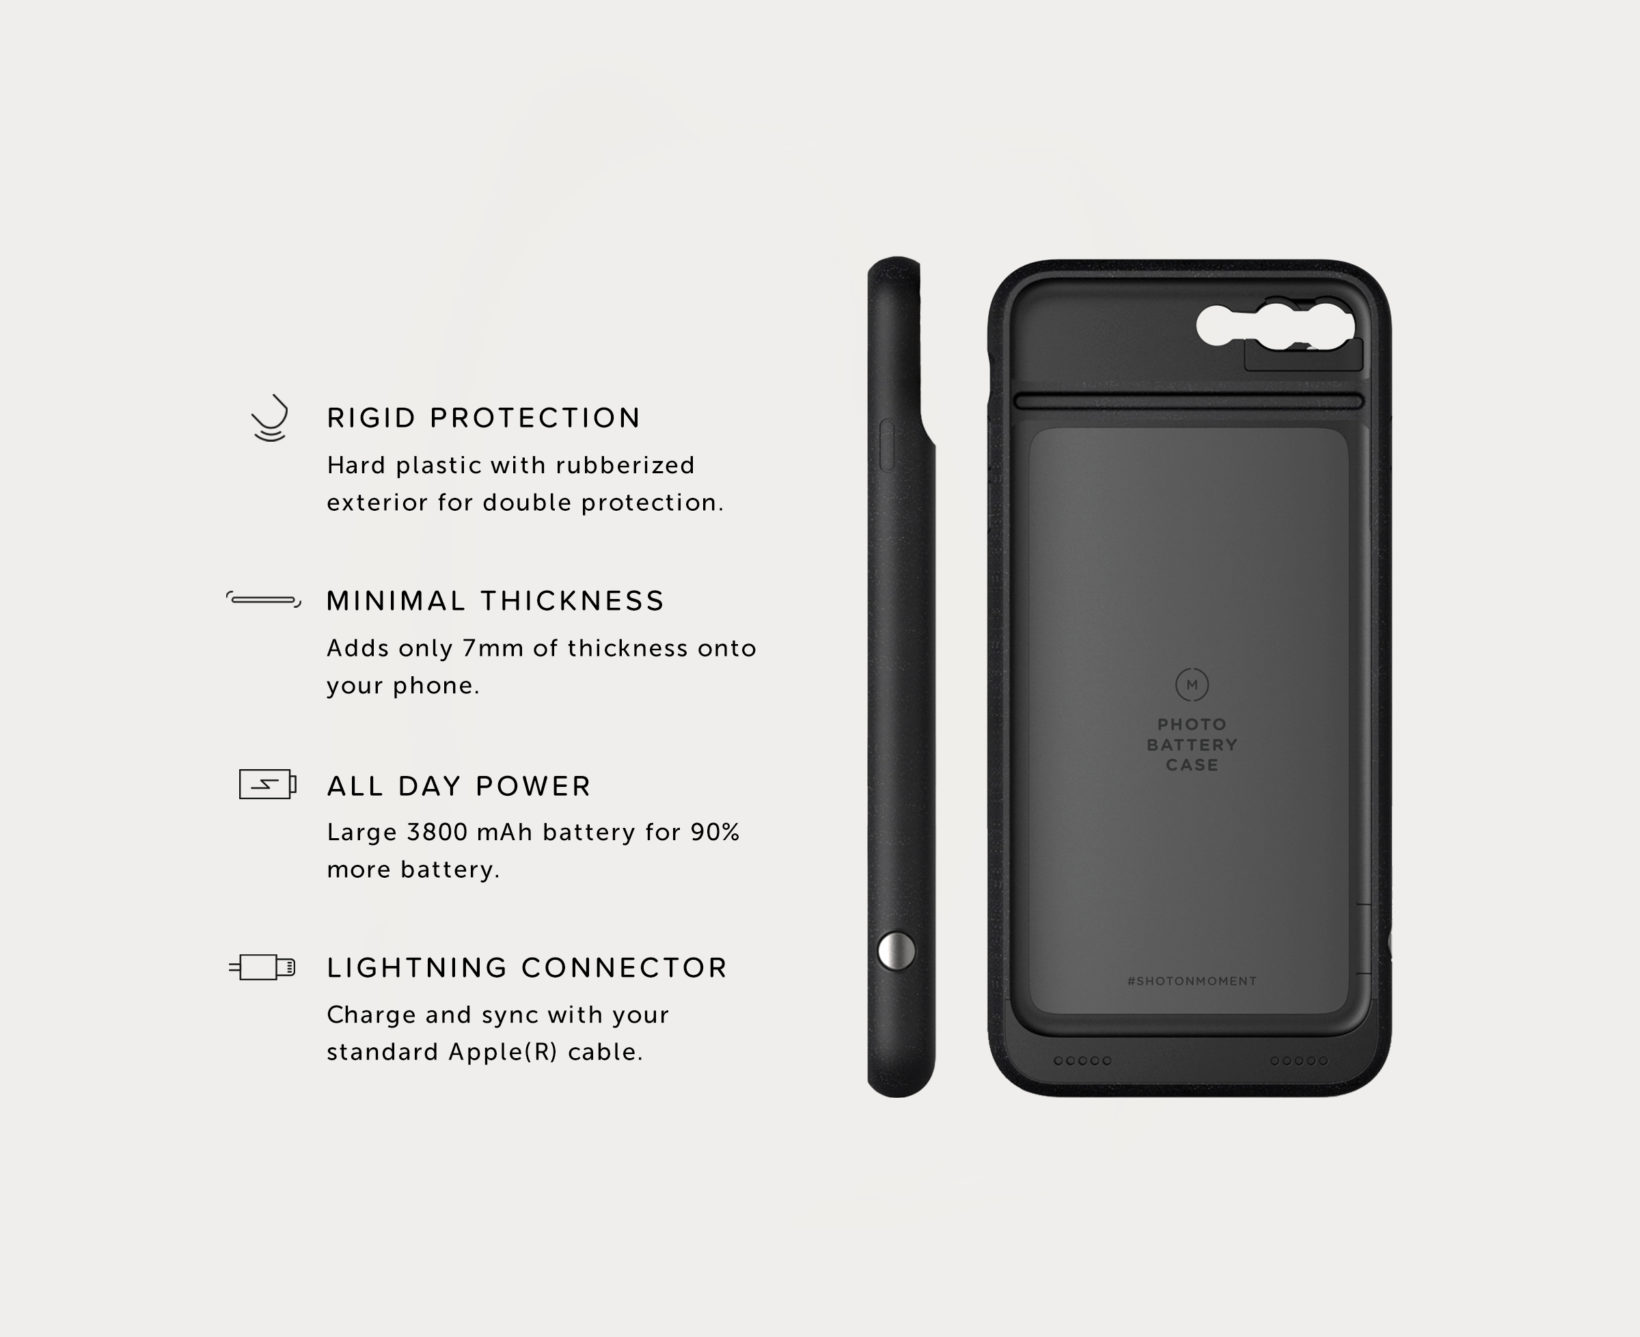 9141eed7985 iPhone Battery Photo Case | iPhone 8 Plus / iPhone 7 Plus